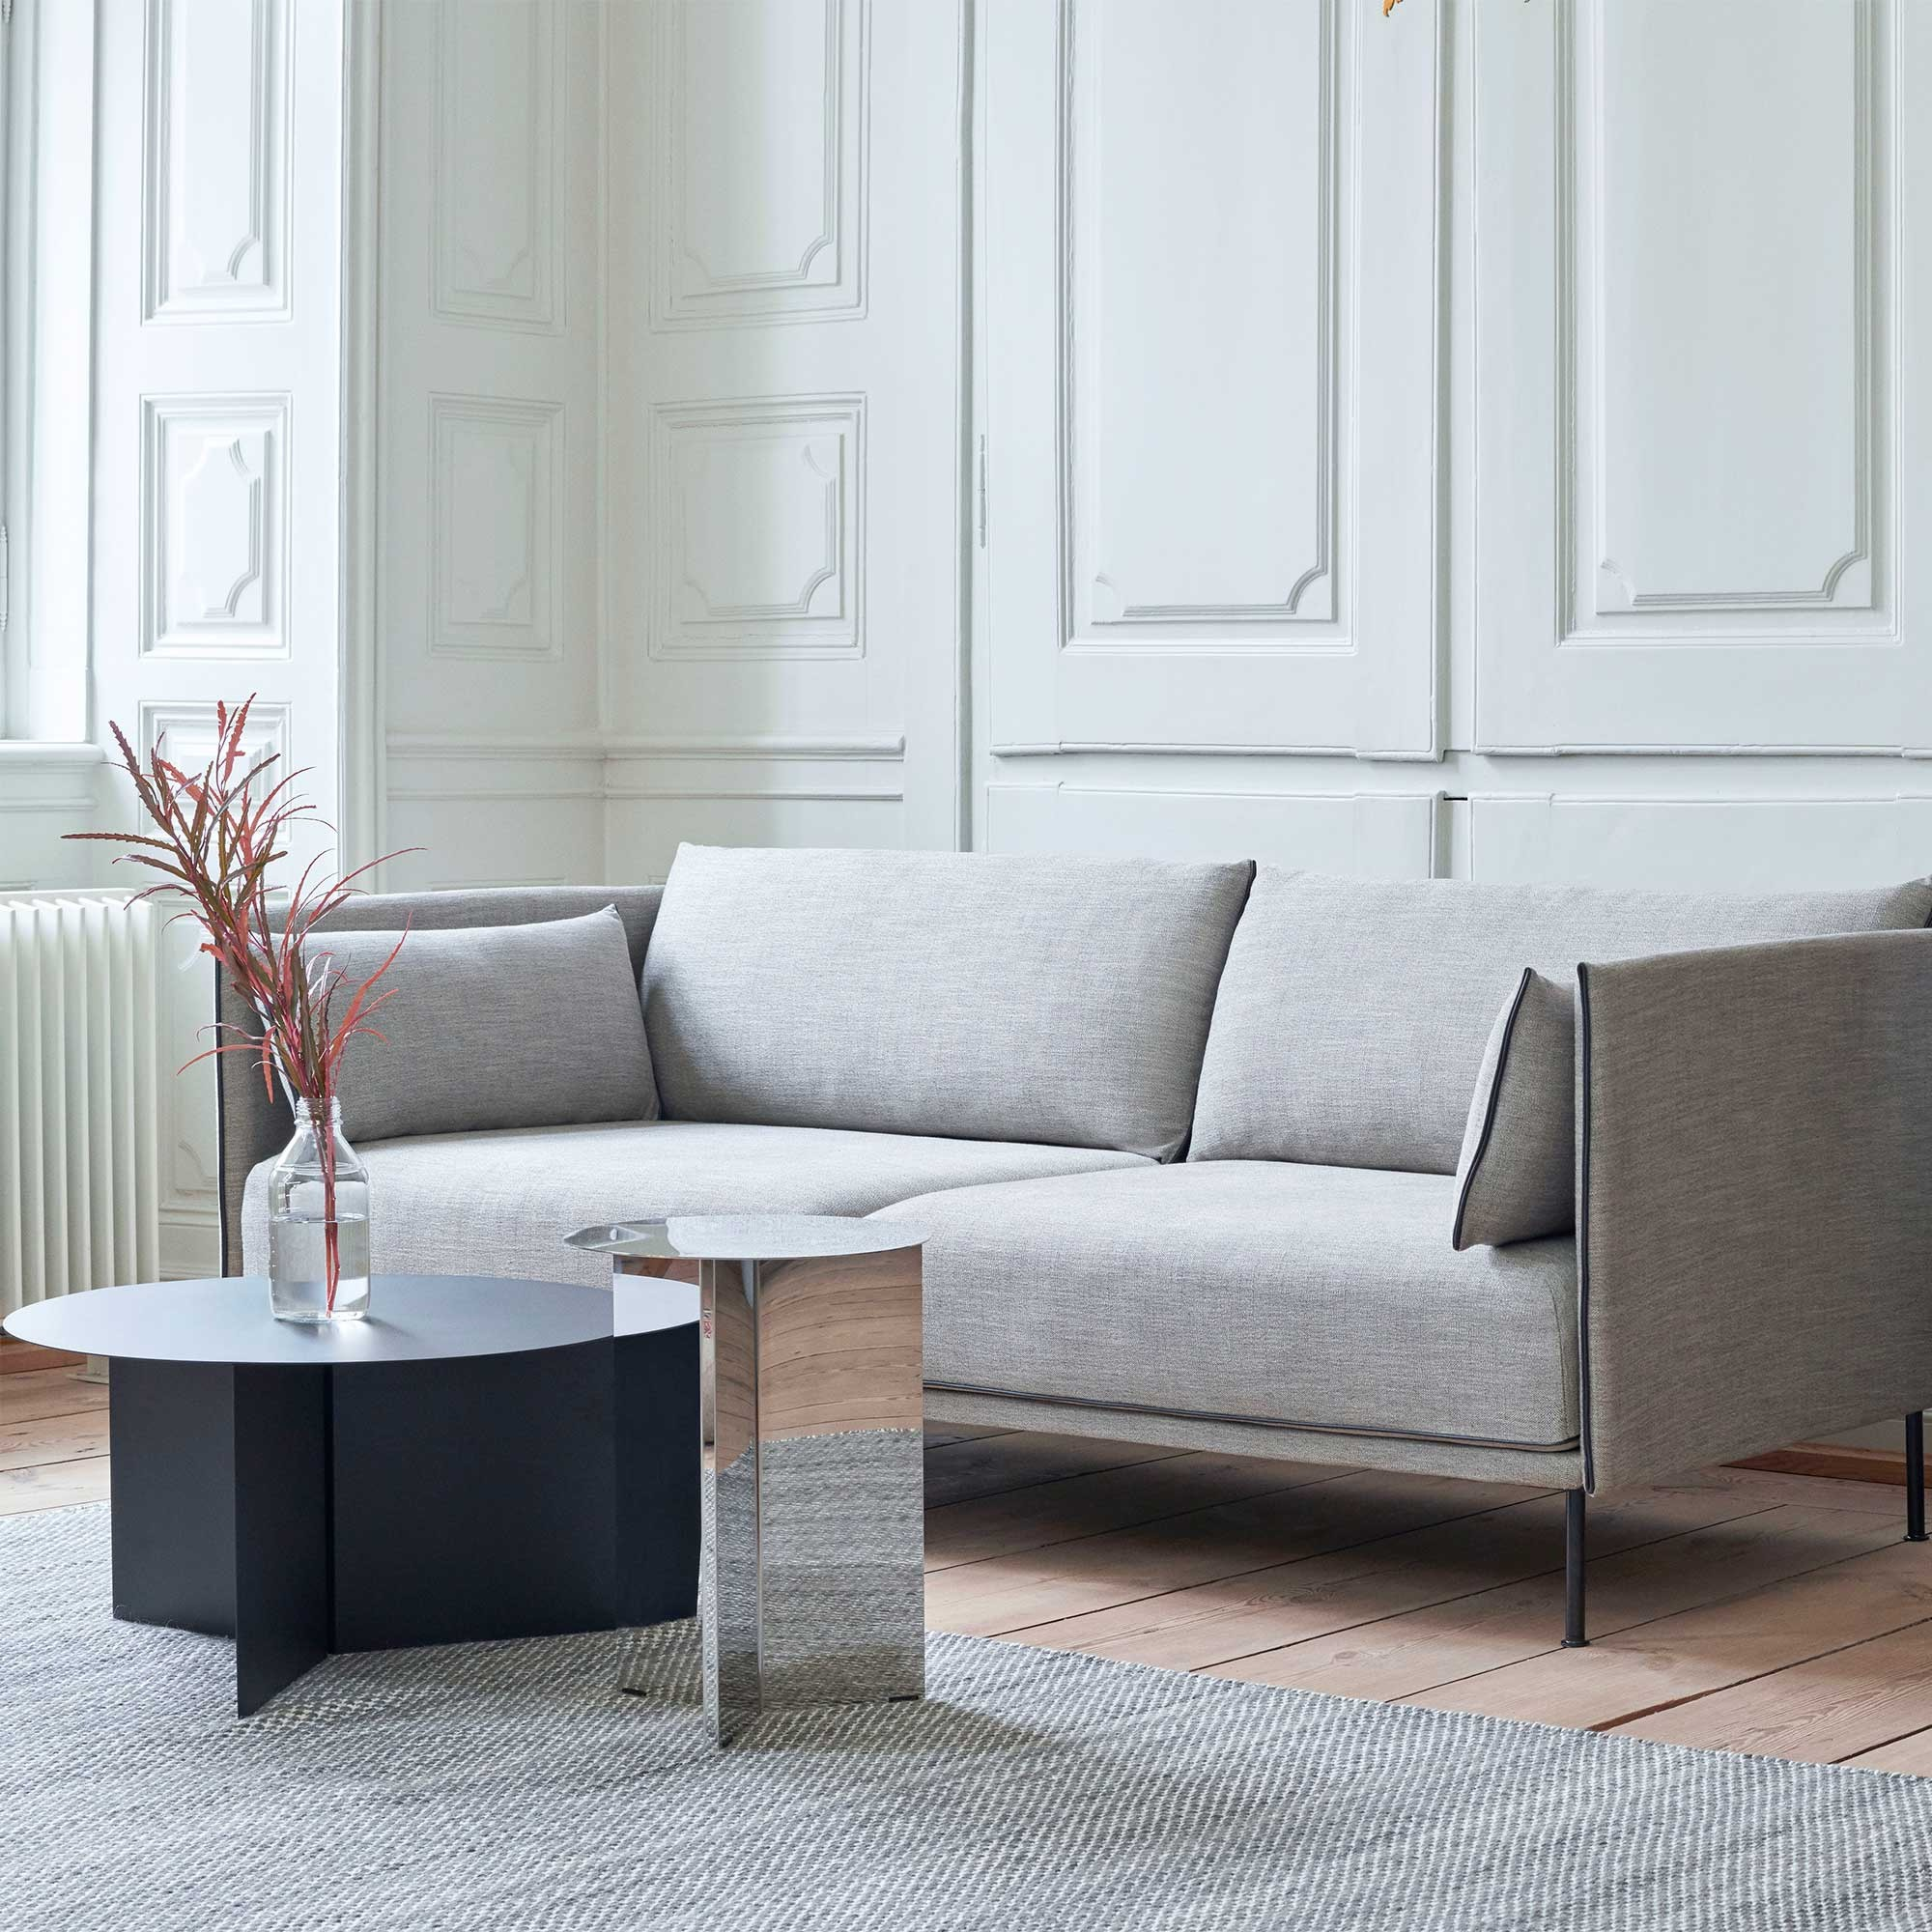 small-modern-sofa-nordic-furniture-design-67-inch-couch-grey-upholstery-with-black-contrast-piping